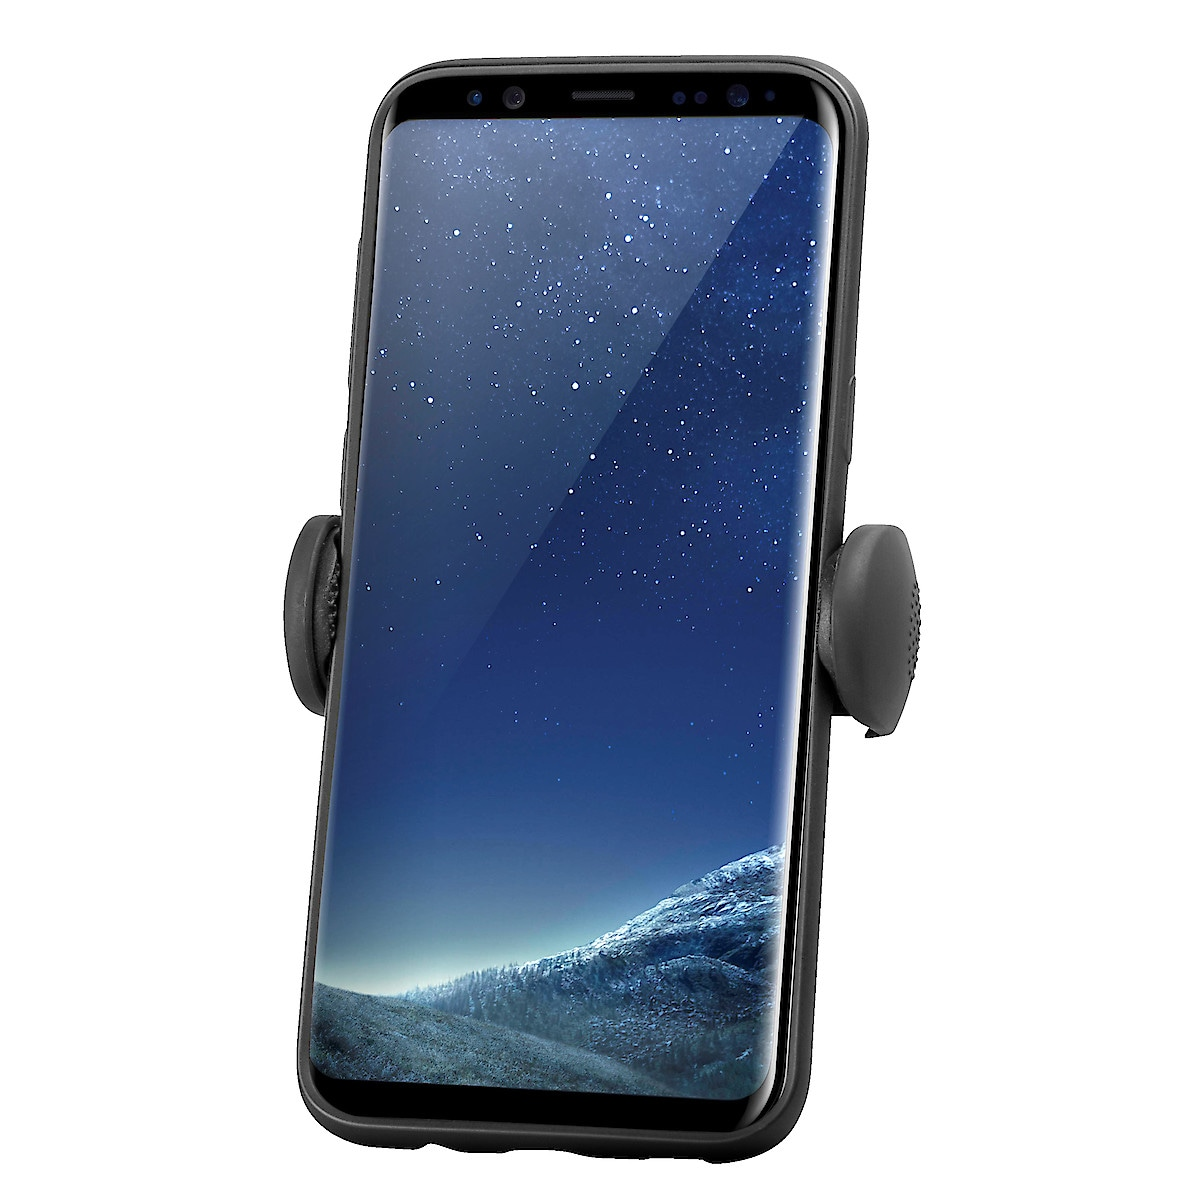 Ercko 10W Phone Holder with Wireless Charging